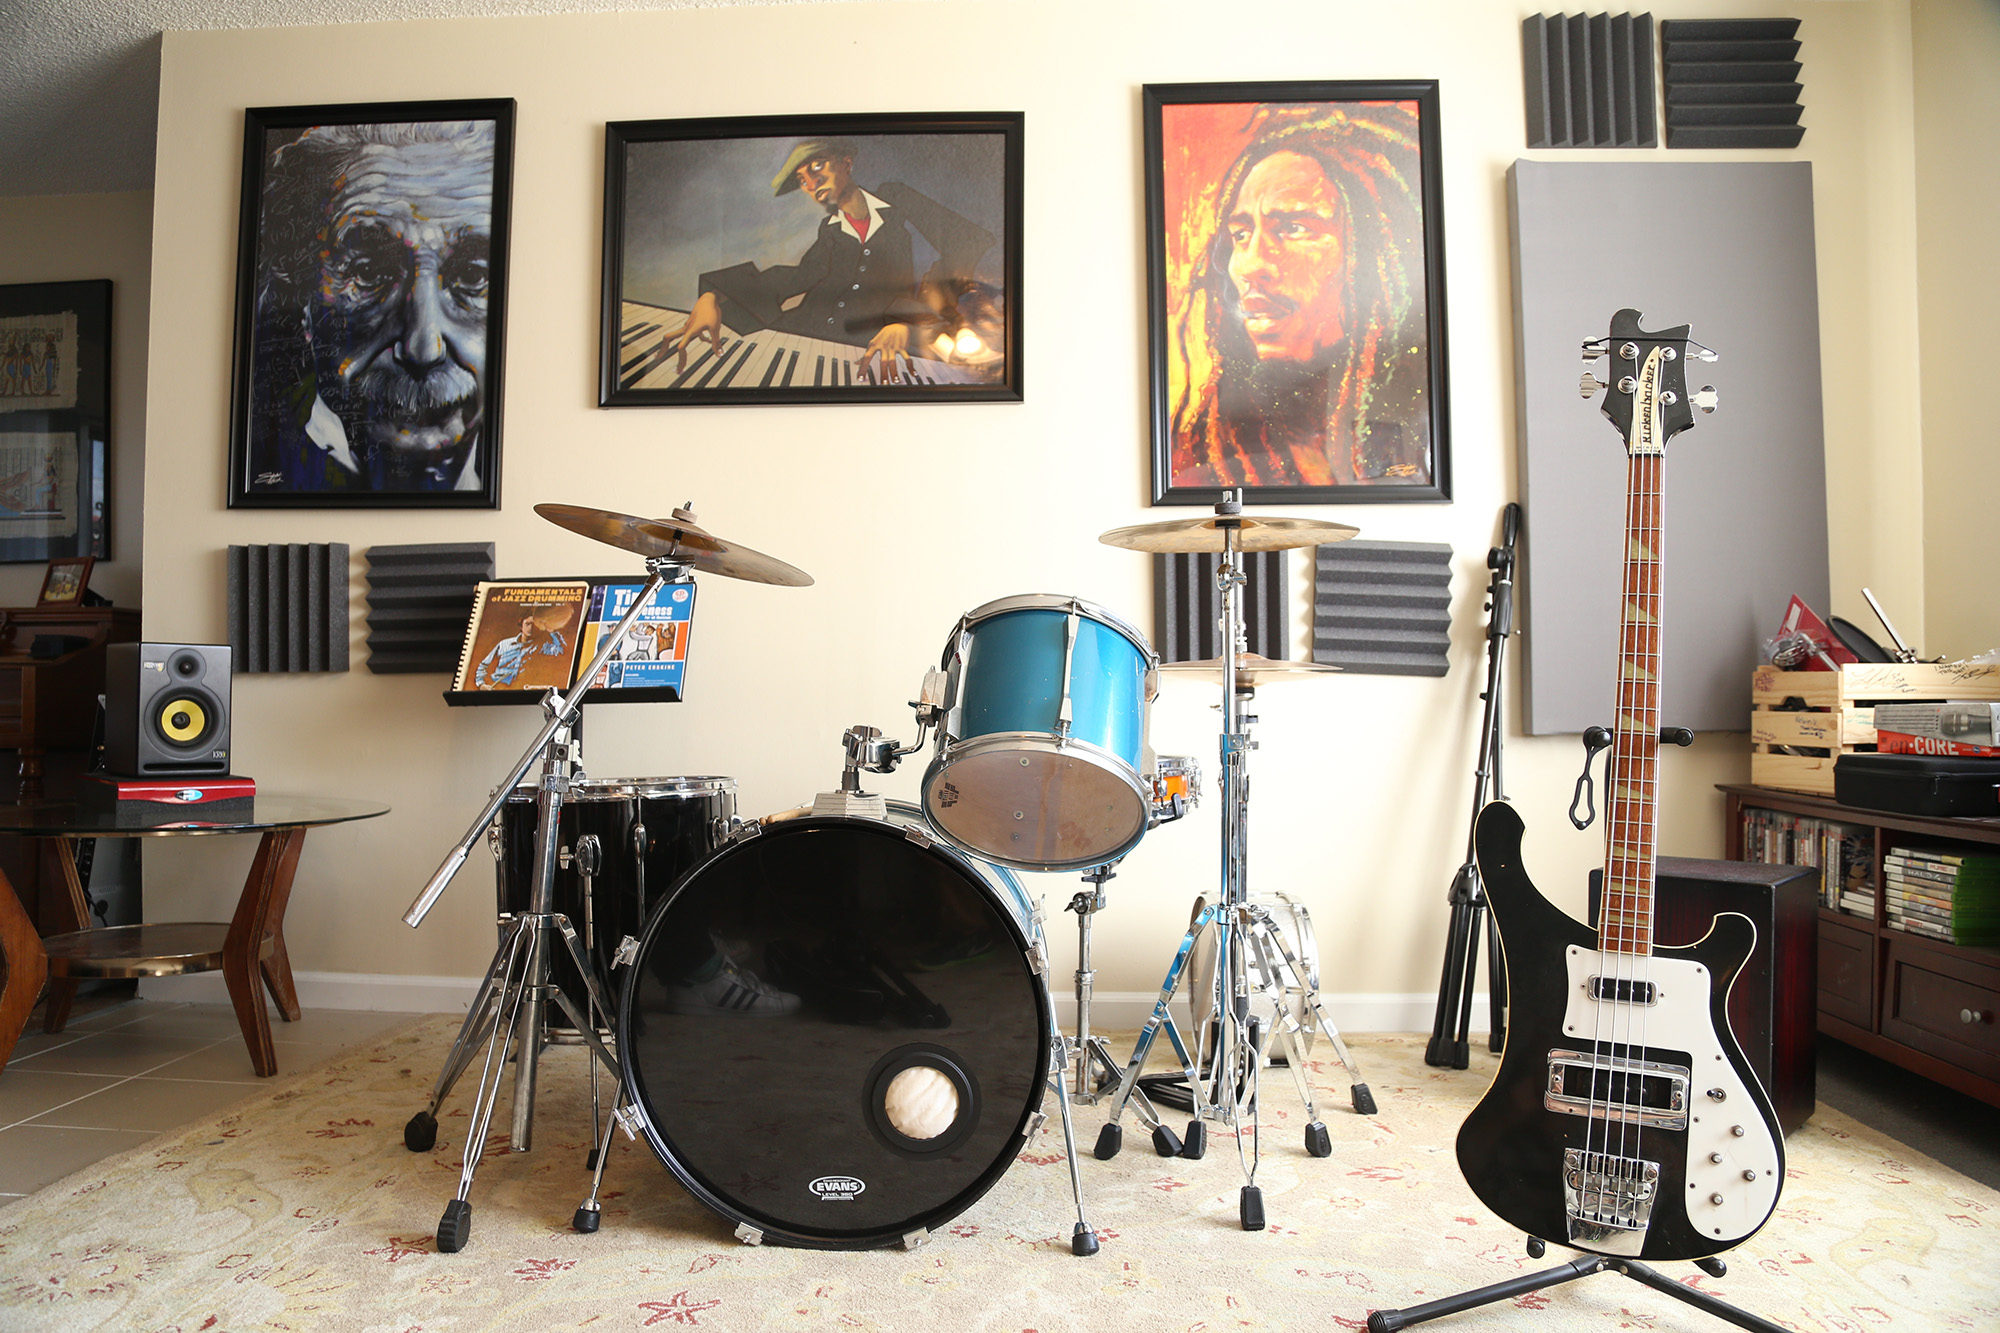 The Sauna studio with instruments and paintings